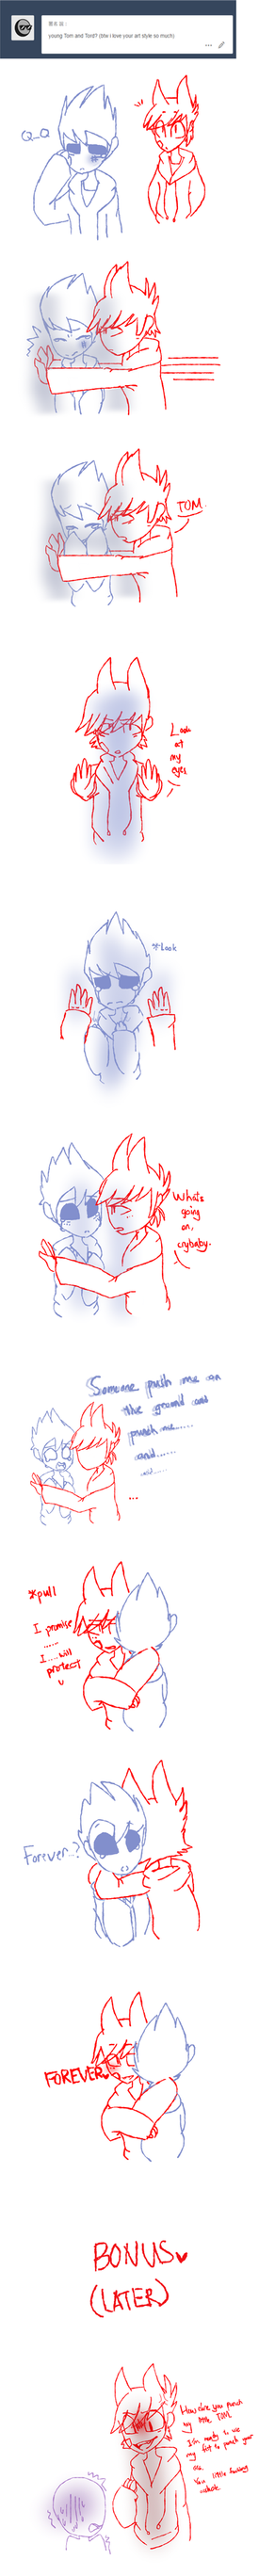 Eddsworld young tom and tord by HuiRou